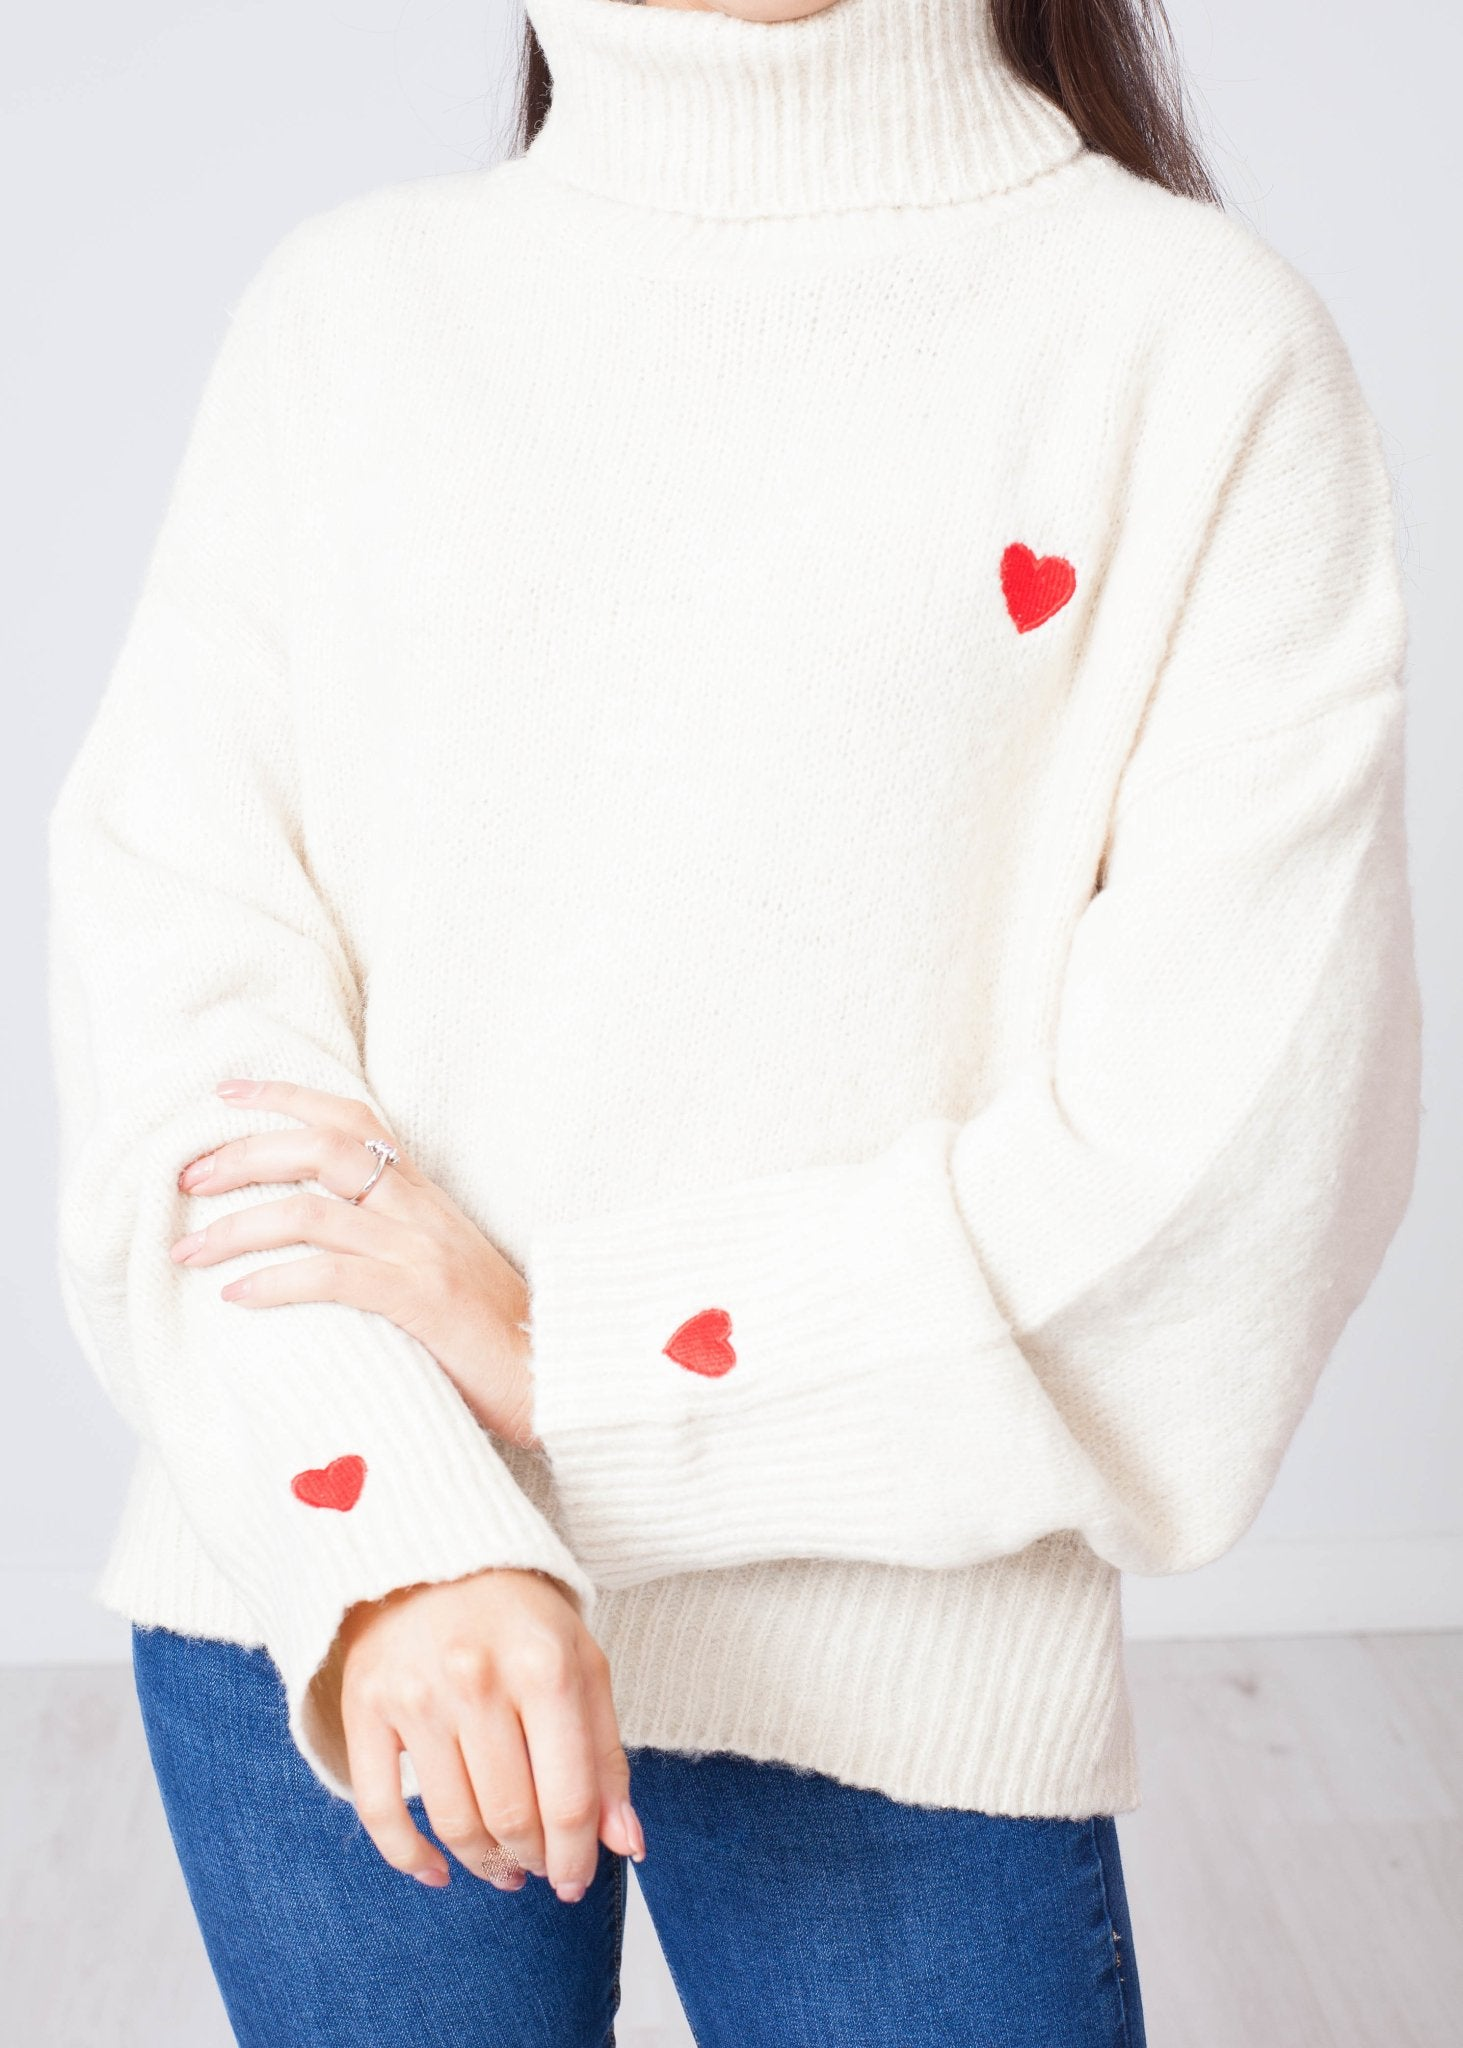 Priya Polo Neck With Heart In Cream - The Walk in Wardrobe